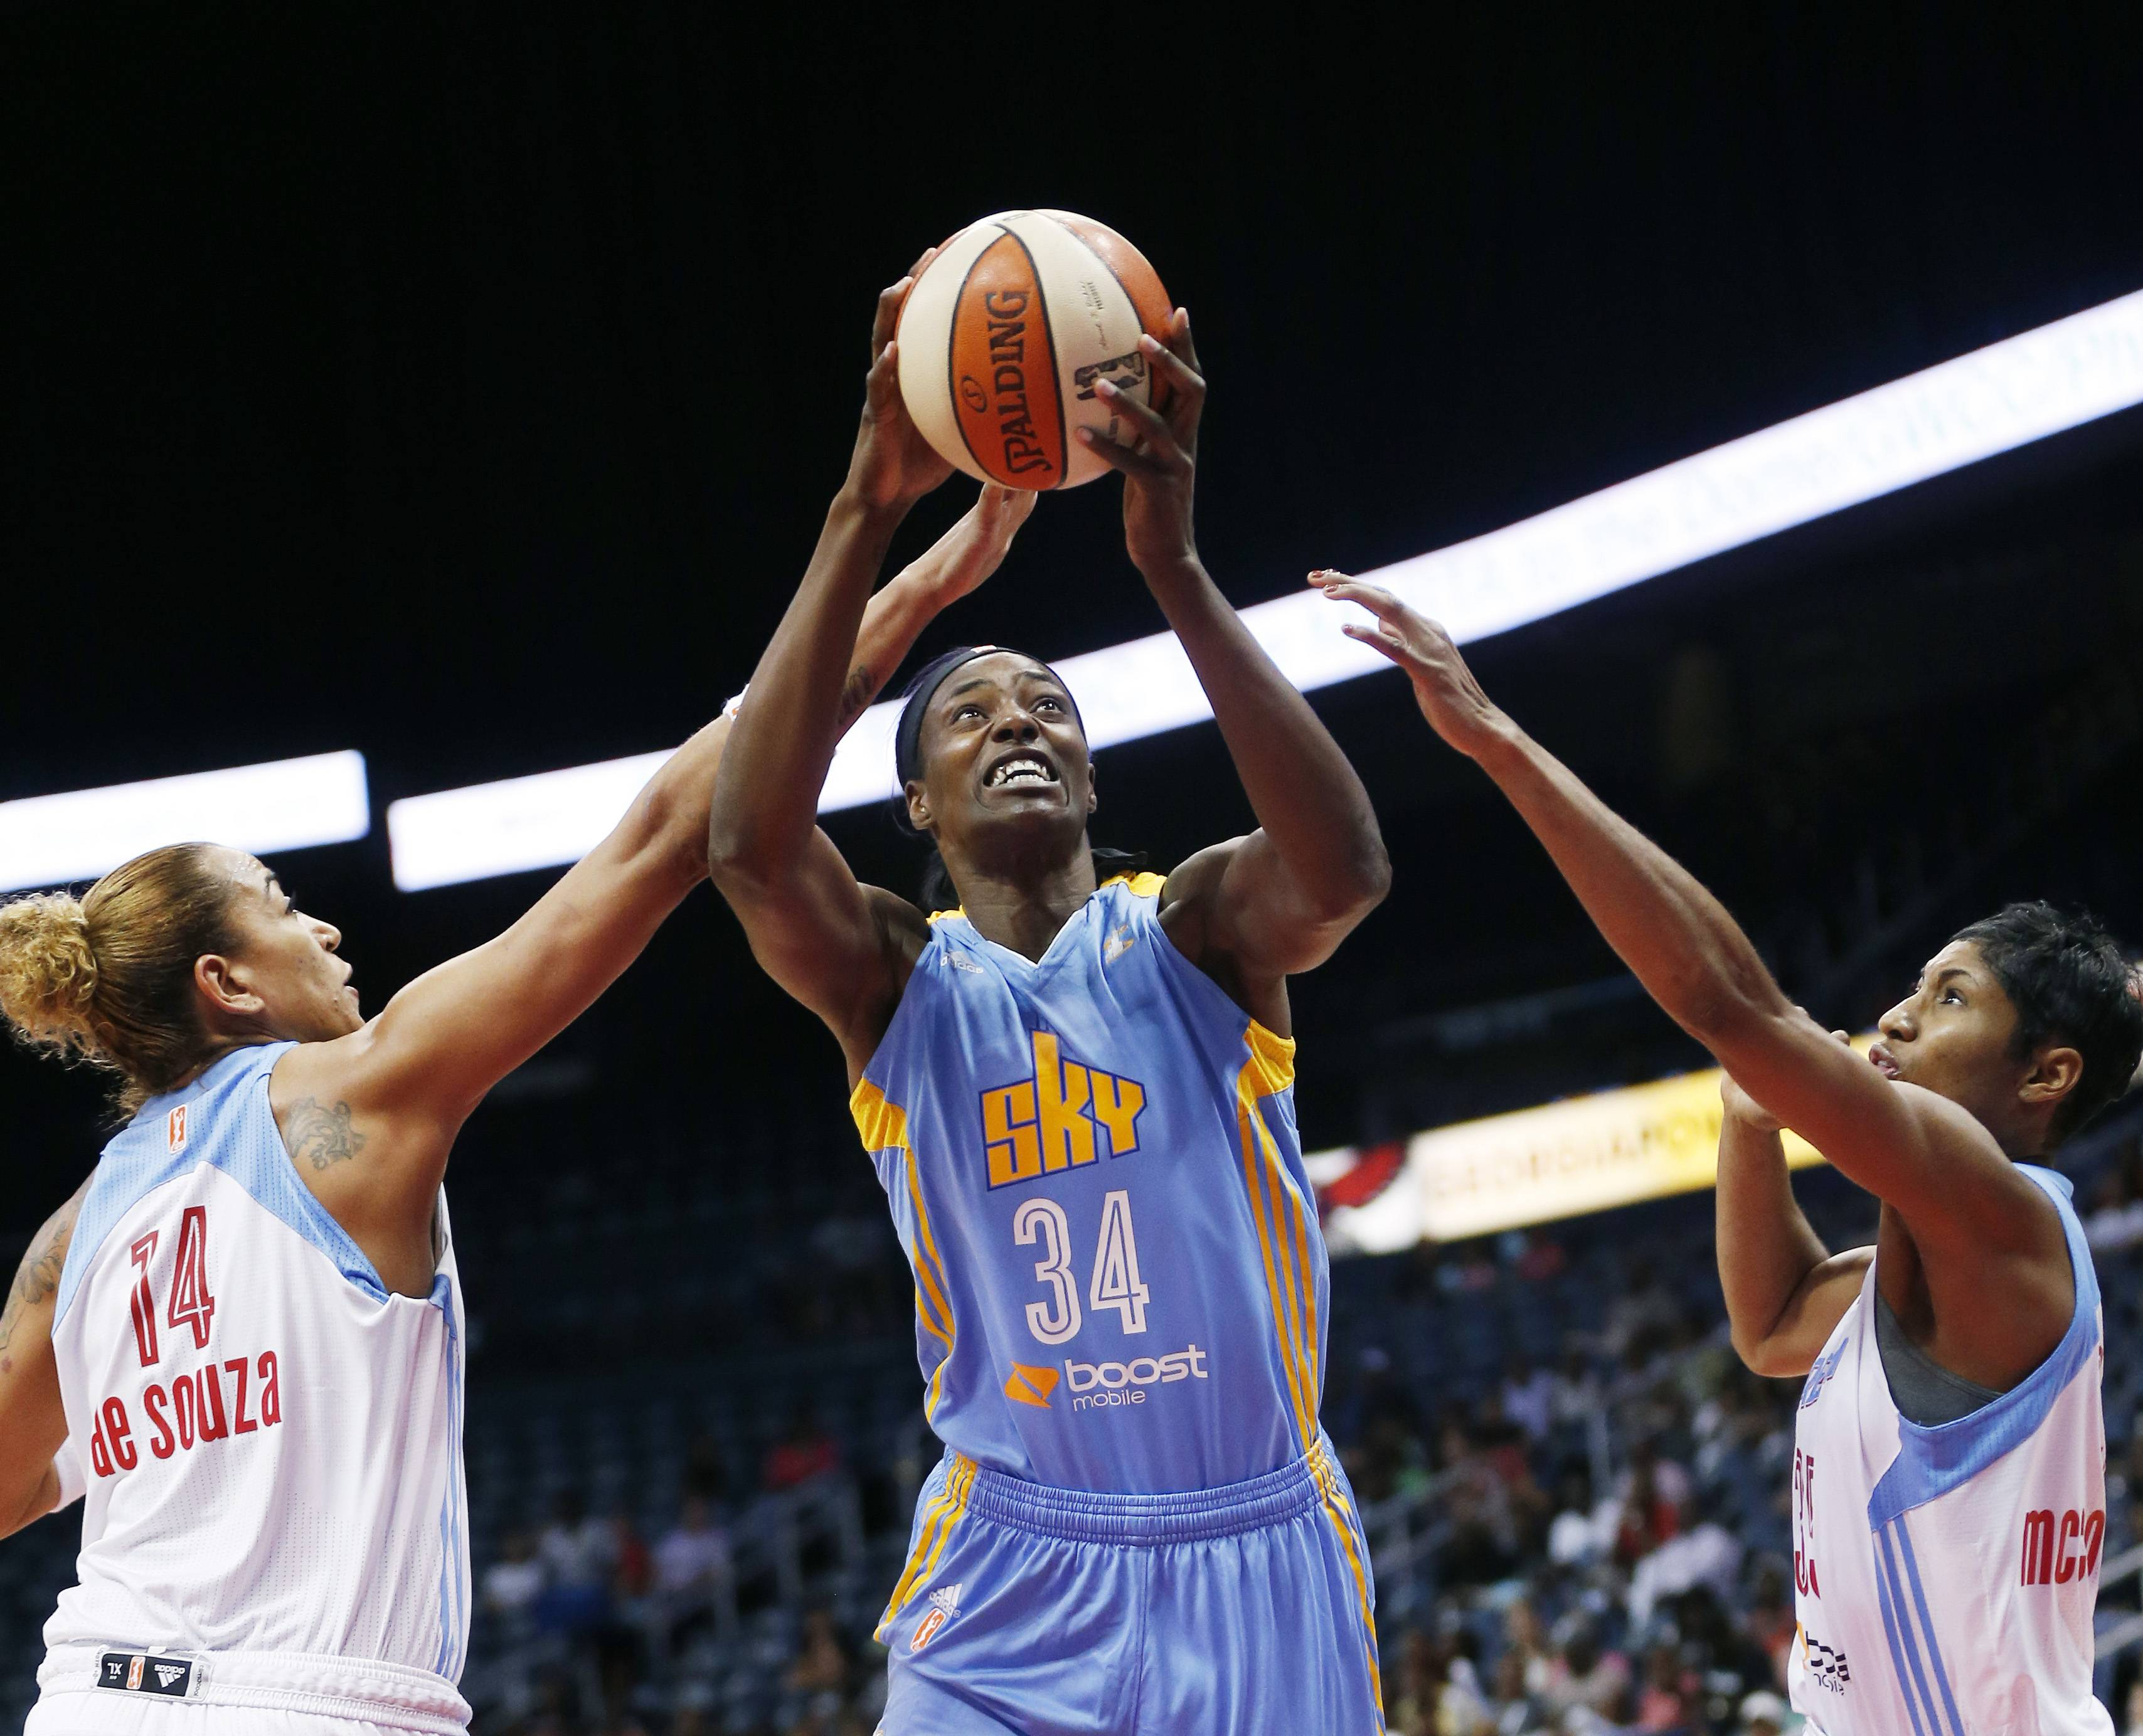 Sky veteran Sylvia Fowles (34) makes her first appearance in the Eastern Conference finals on Saturday against the Indiana Fever at Indianapolis.